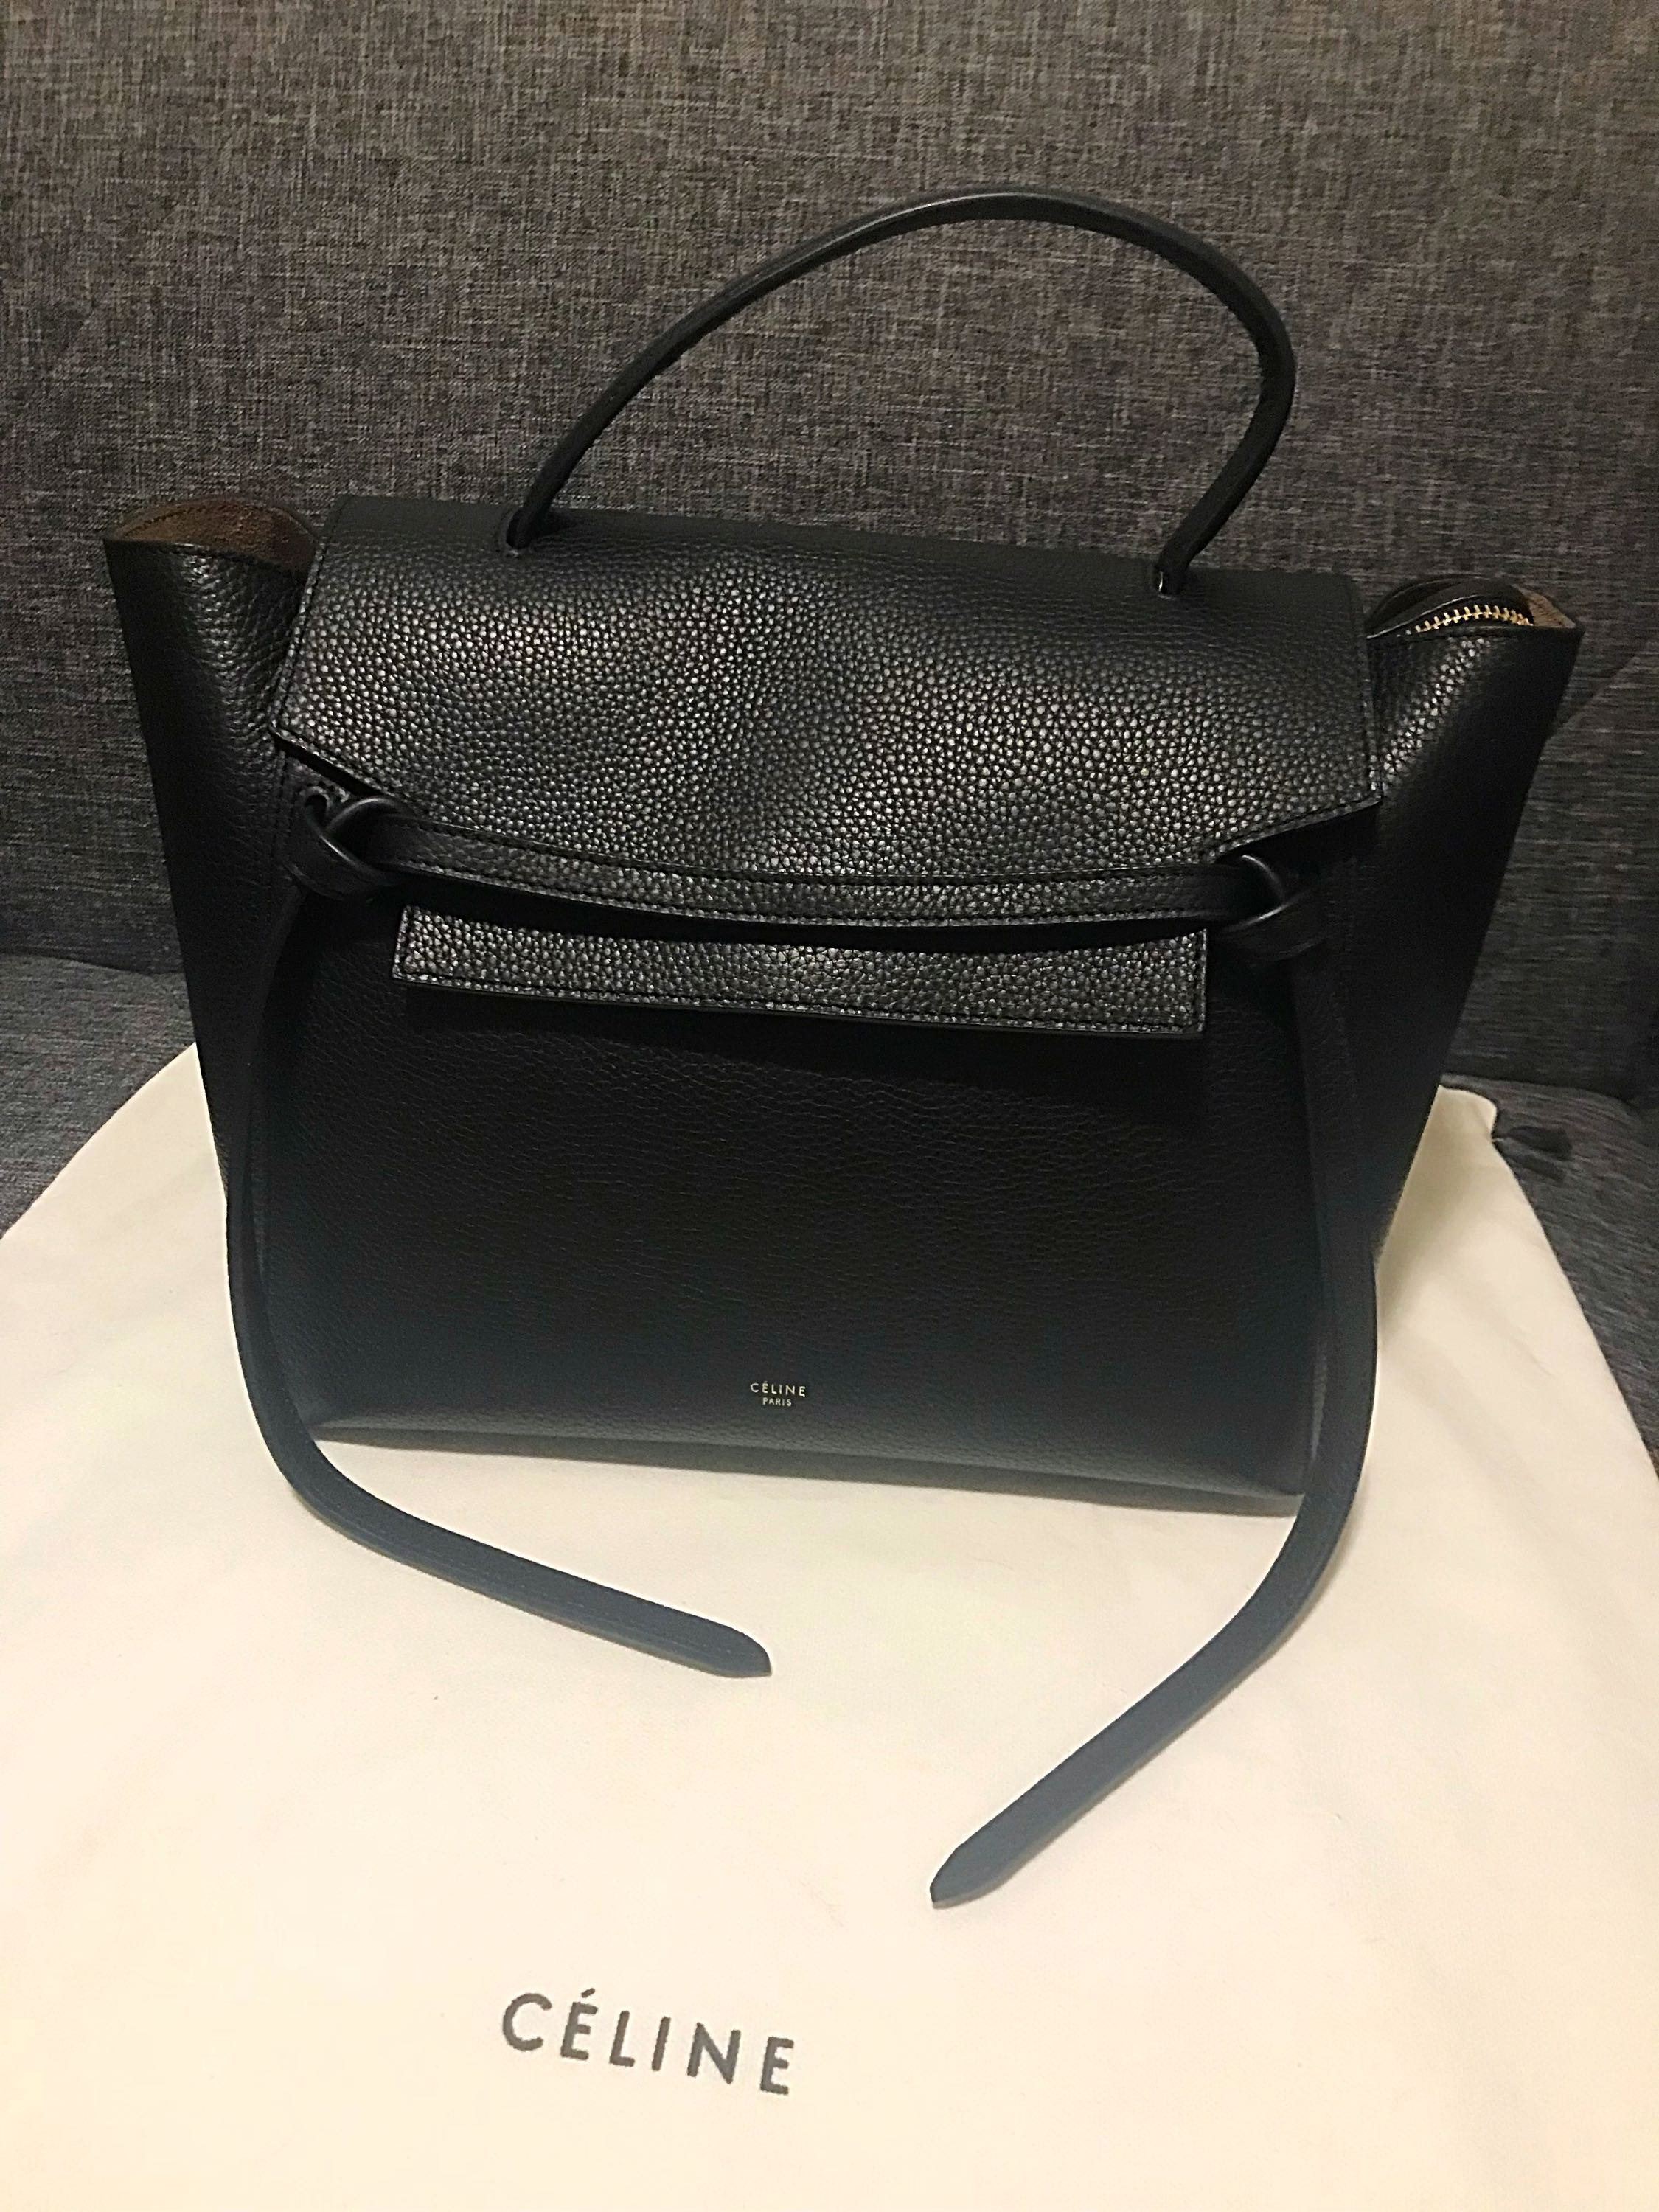 Authentic Celine Small Belt Bag